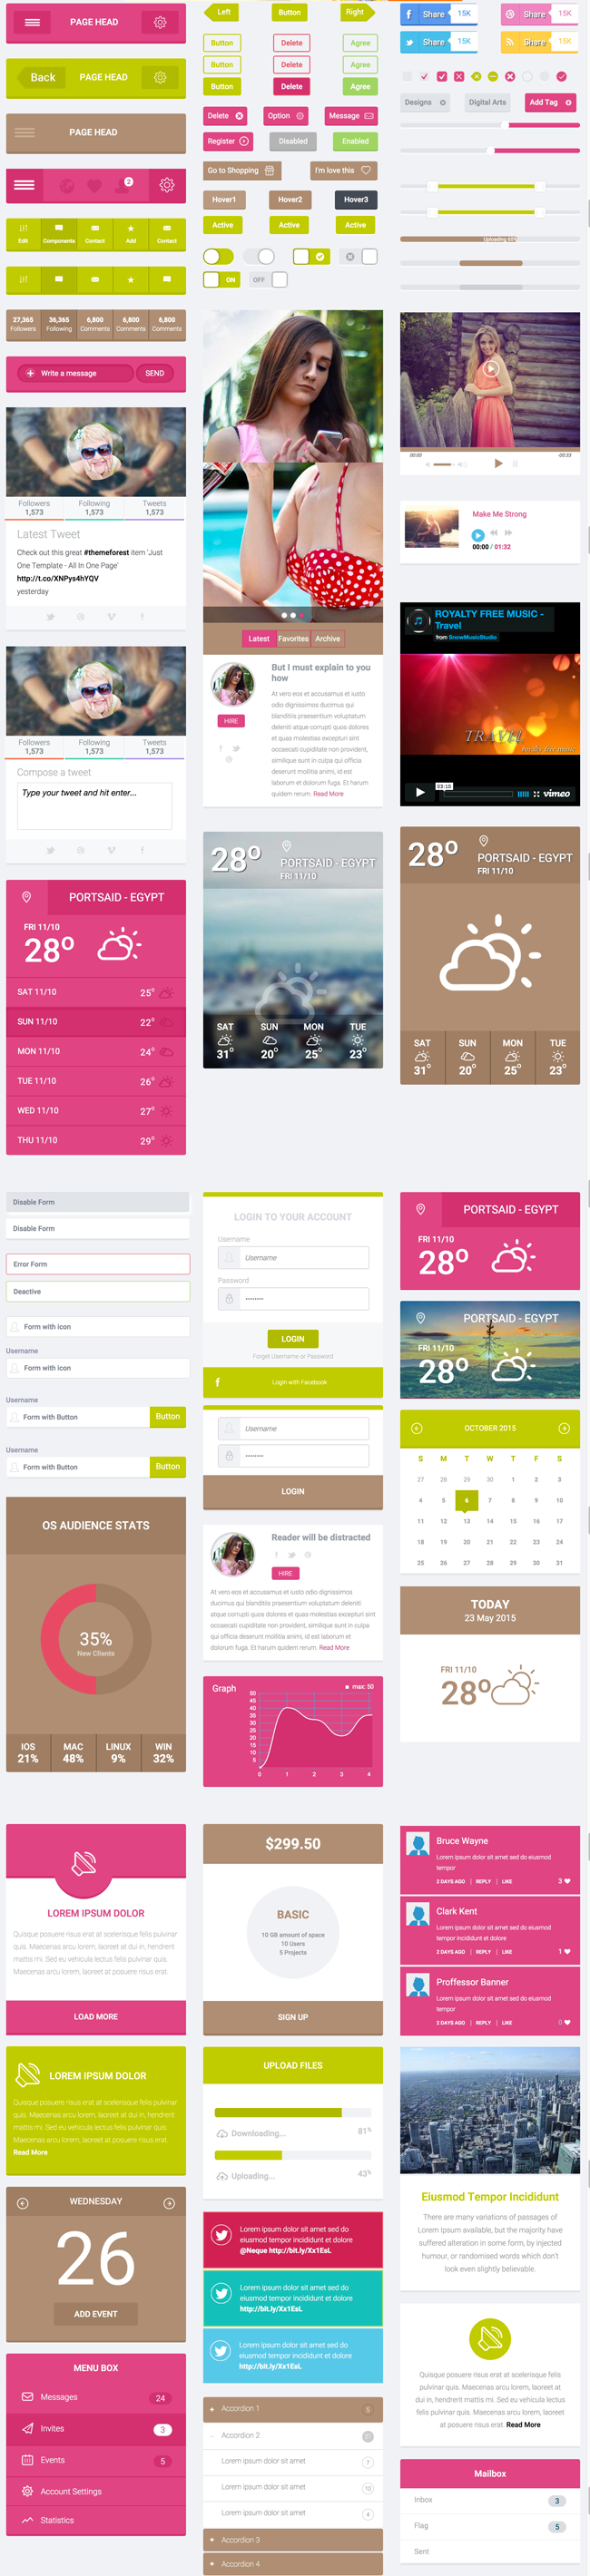 Free Flat HTML5 CSS3 UI Kit Preview